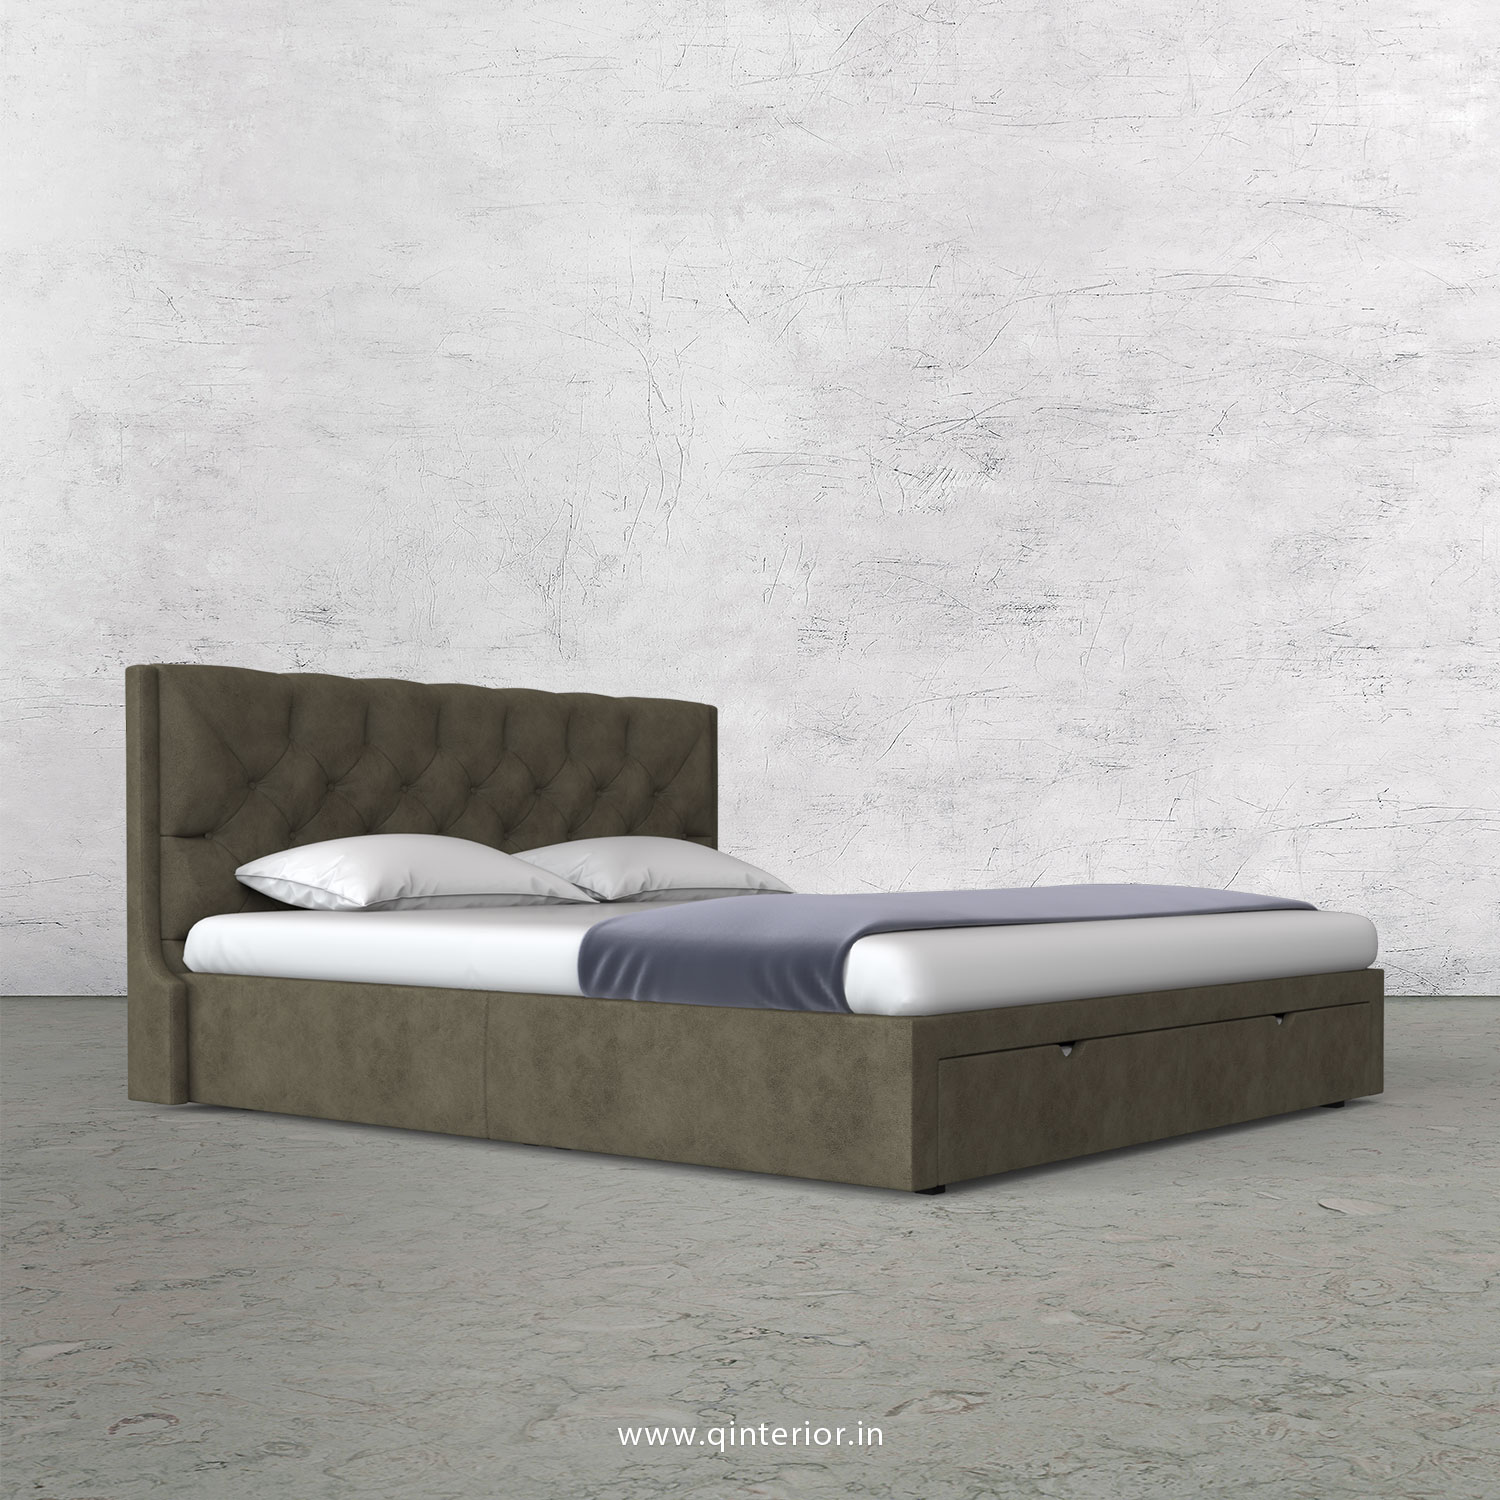 Scorpius King Size Storage Bed in Fab Leather Fabric - KBD001 FL03